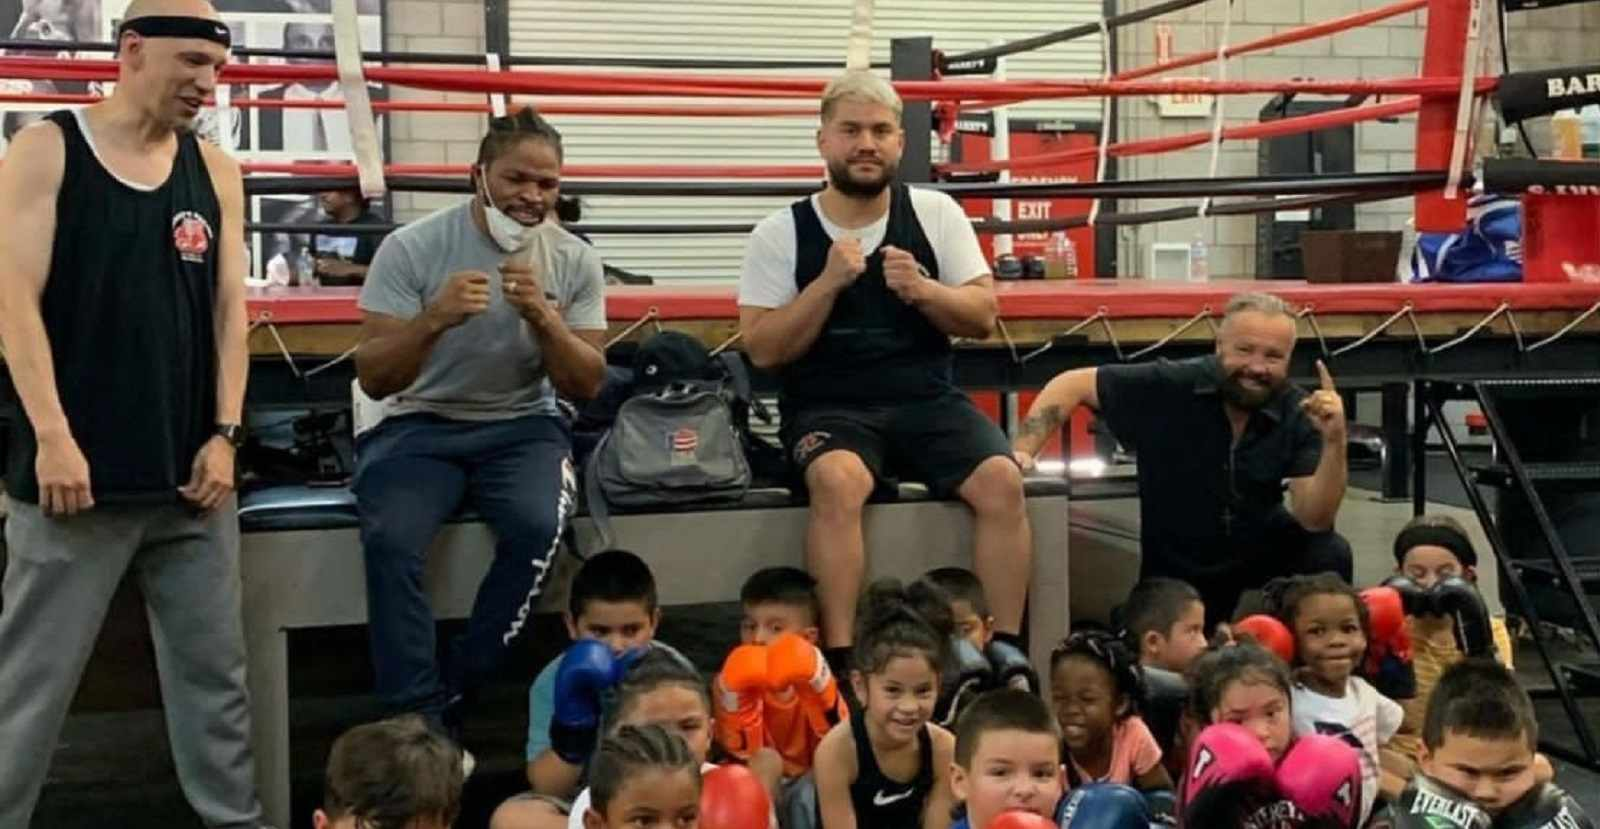 Shawn Porter Gives Back To Amateur Boxing